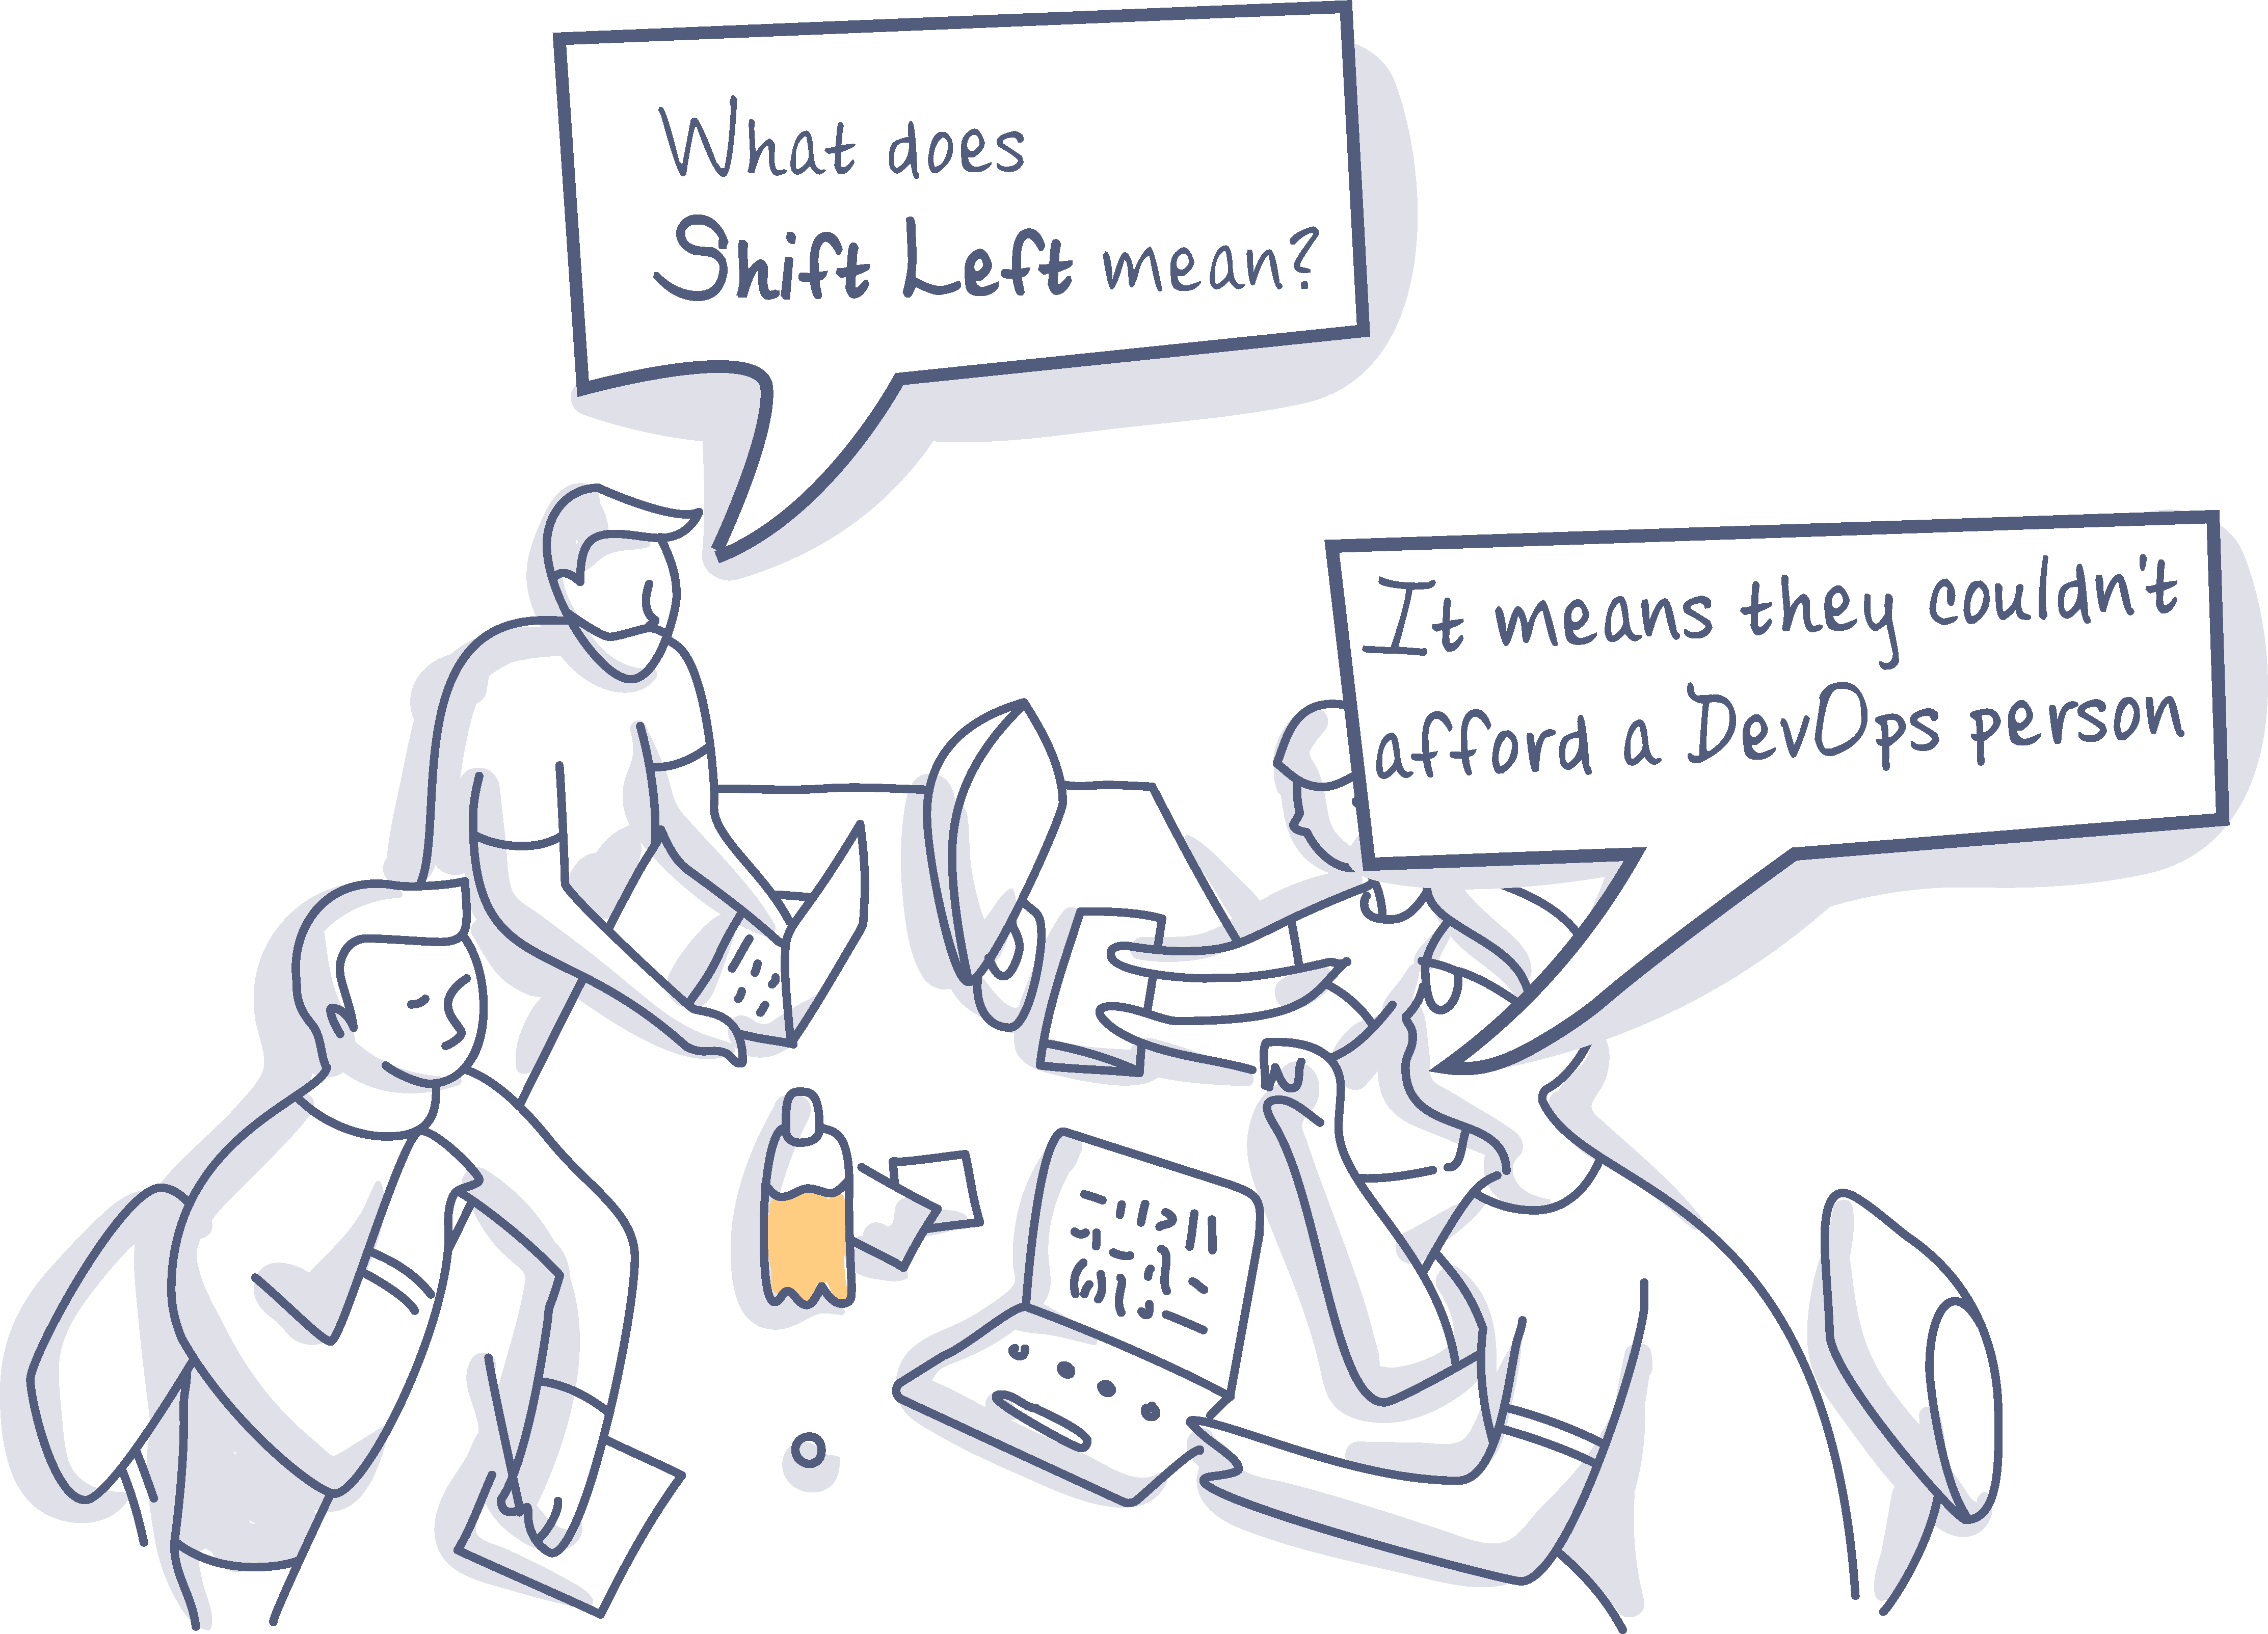 shift left meaning